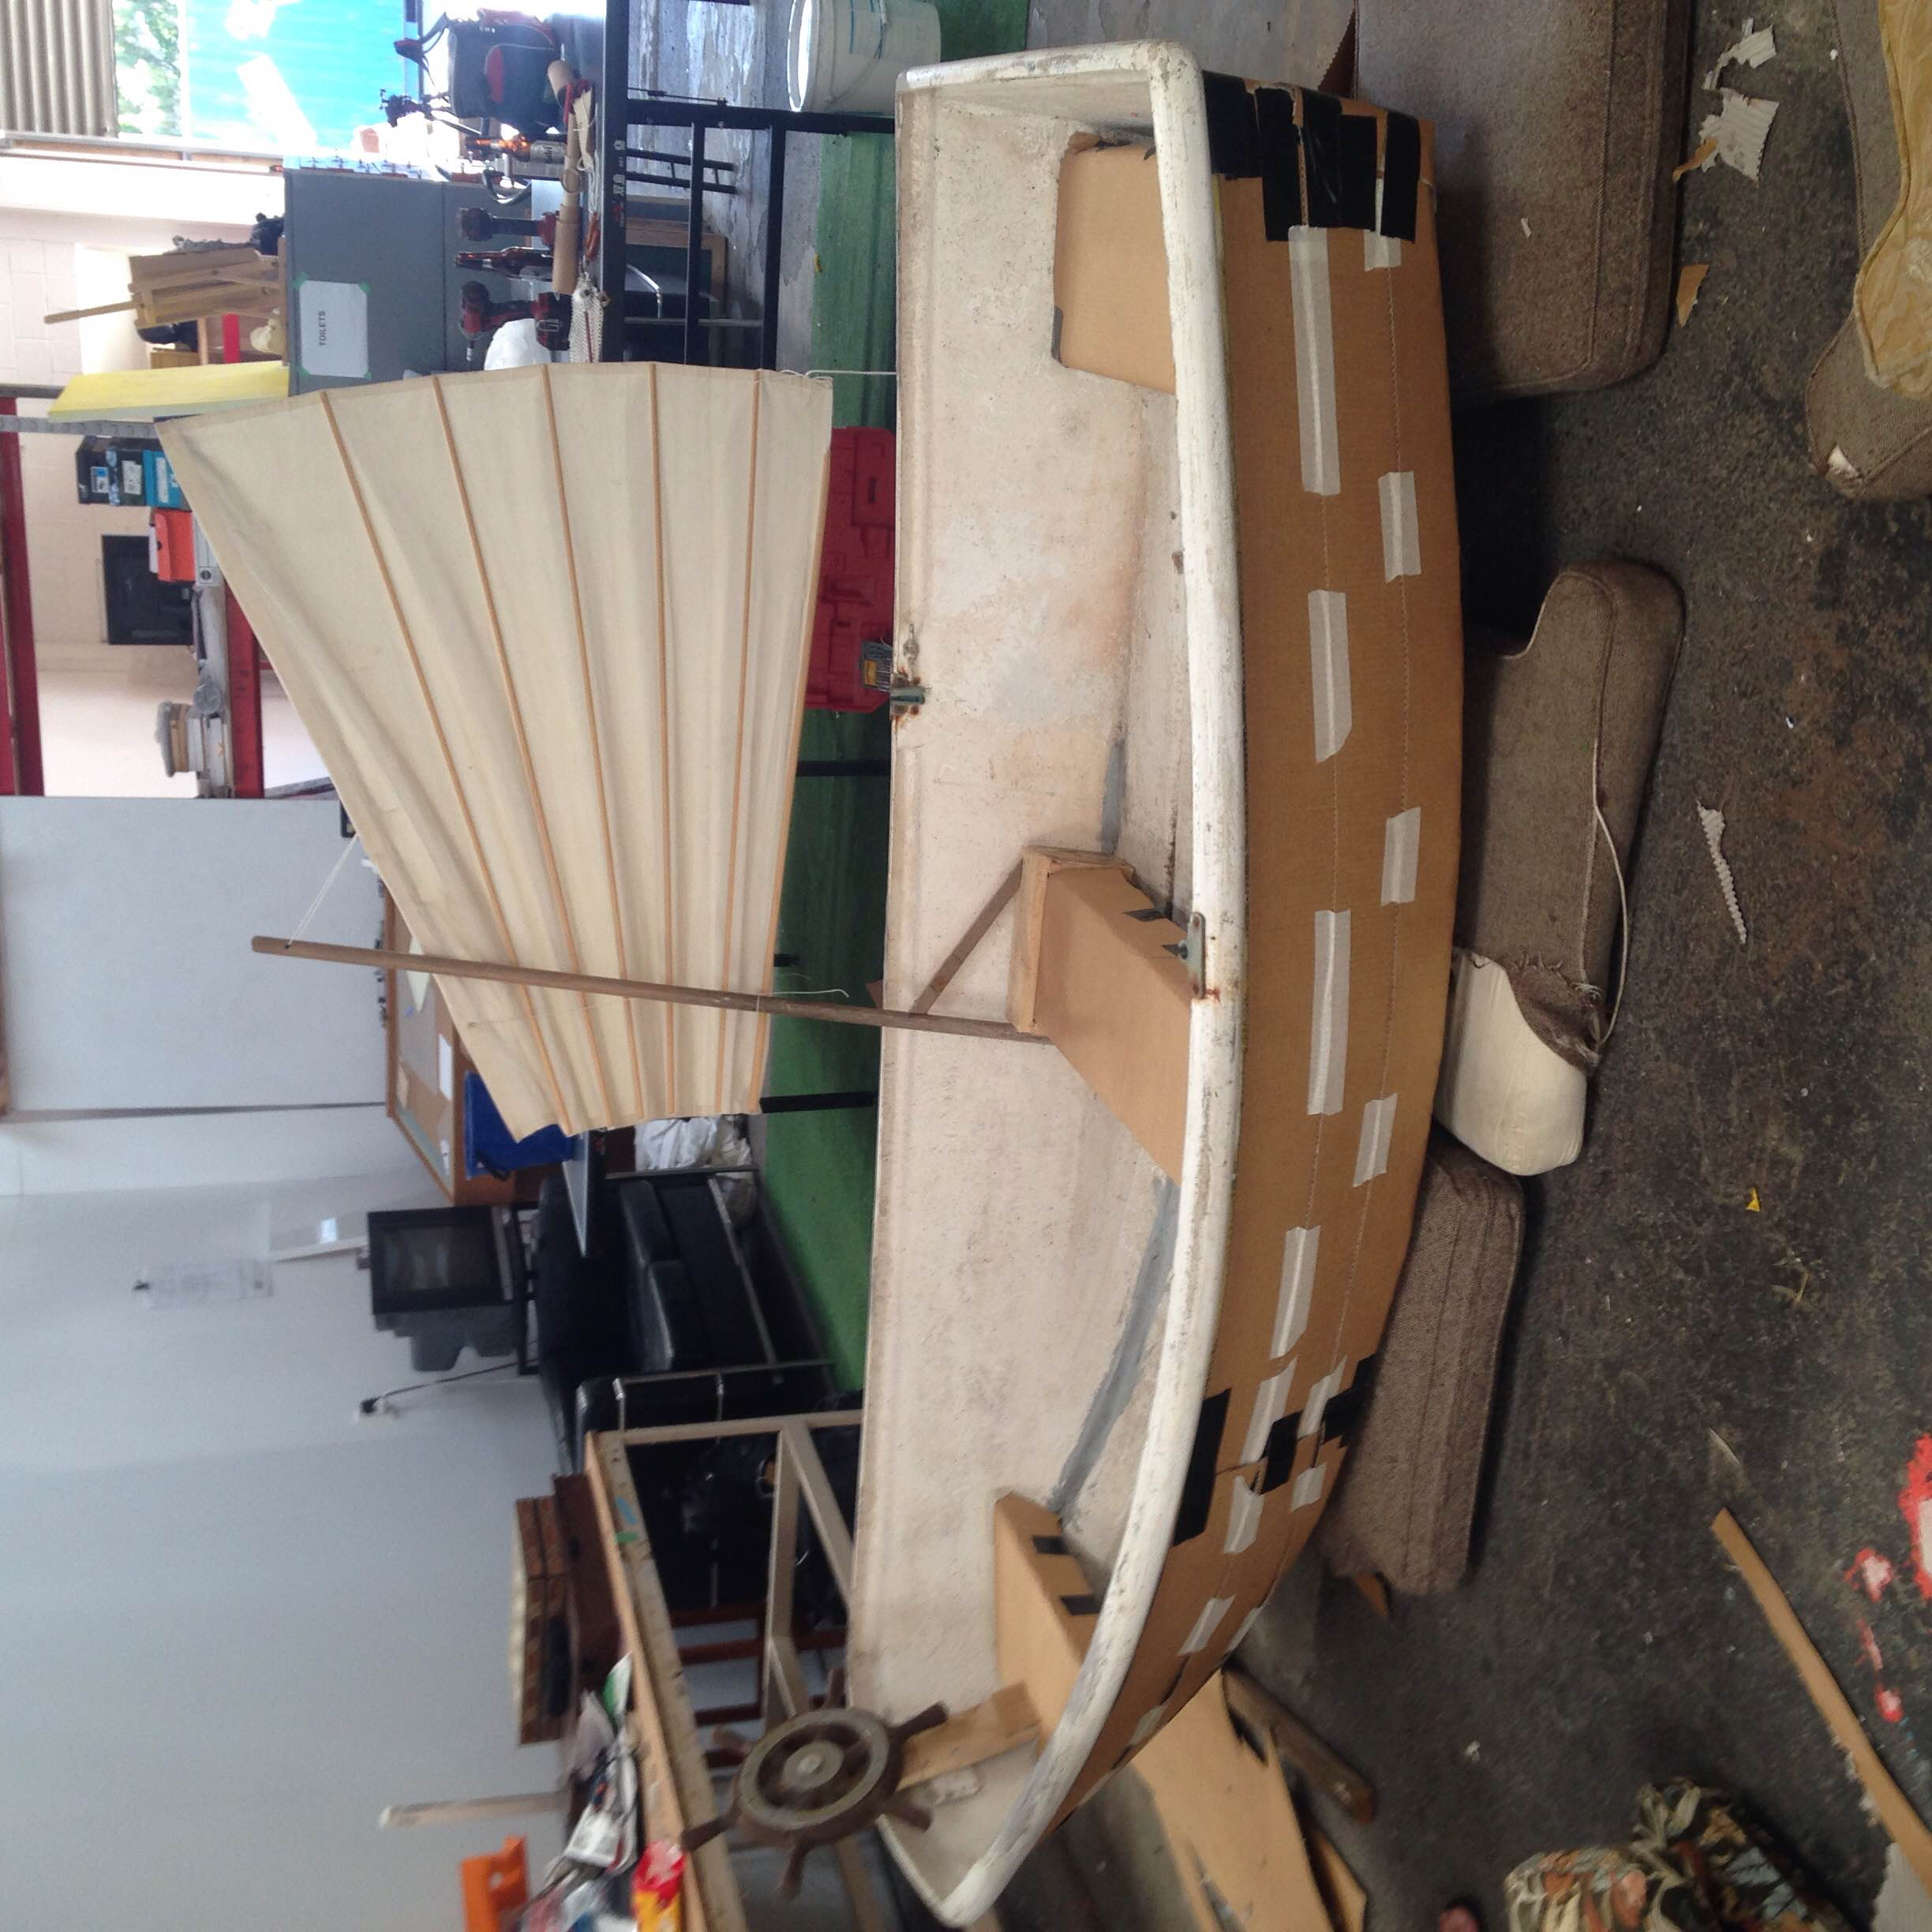 Above:  Alterations to therow boat begins.